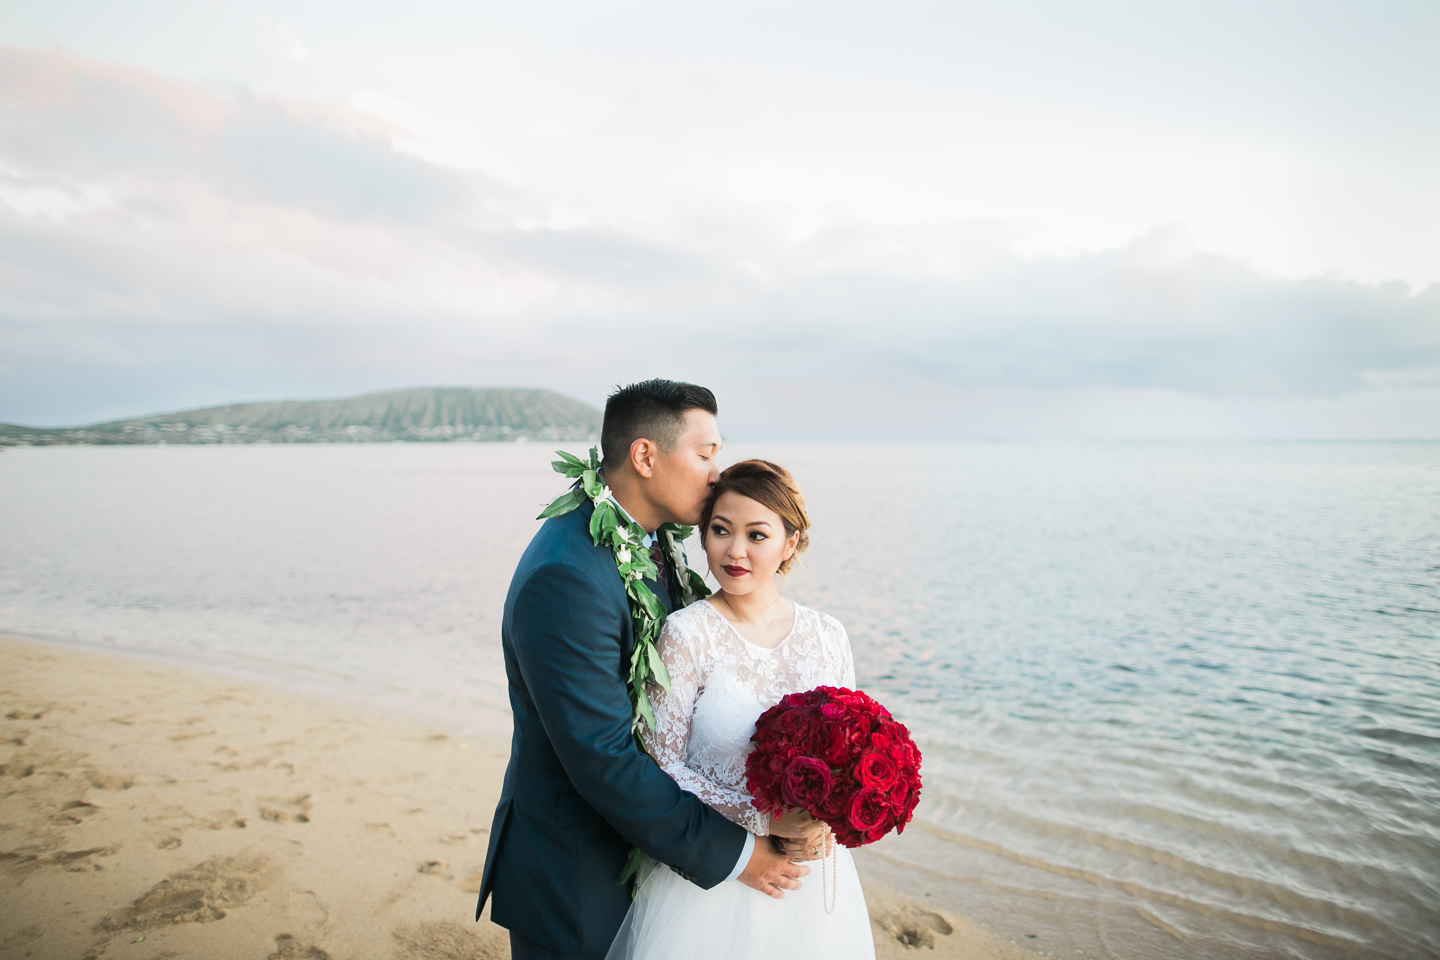 Bride_and_Groom_Wedding_Portrait_Hawaii.jpg